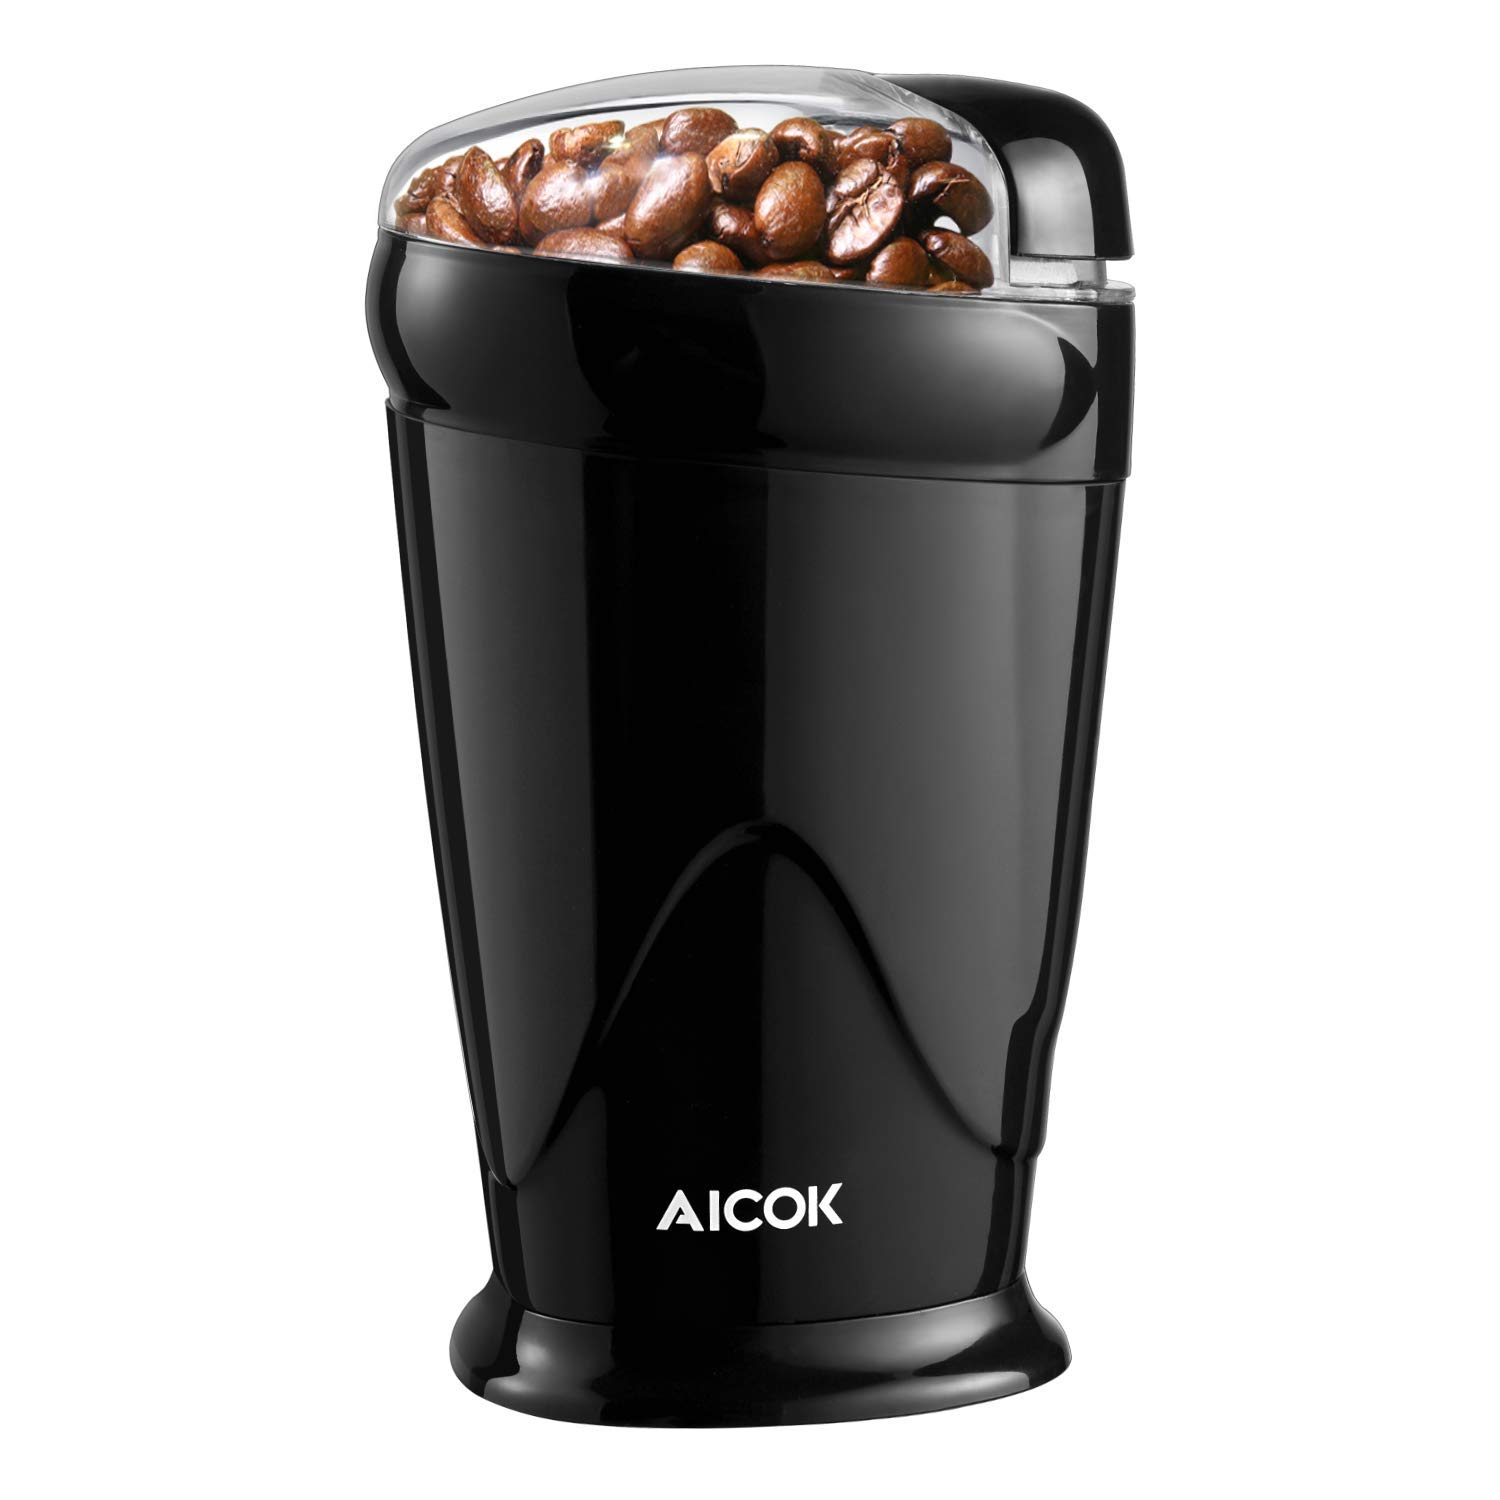 Electric Coffee Grinder, Aicok Coffee Bean Grinder Electric 12 Cup, Portable Spice Grinder with Stainless Steel Blades 150W, One Touch Control Fast Grinding Coffee Beans, Nuts, Grains, 65G